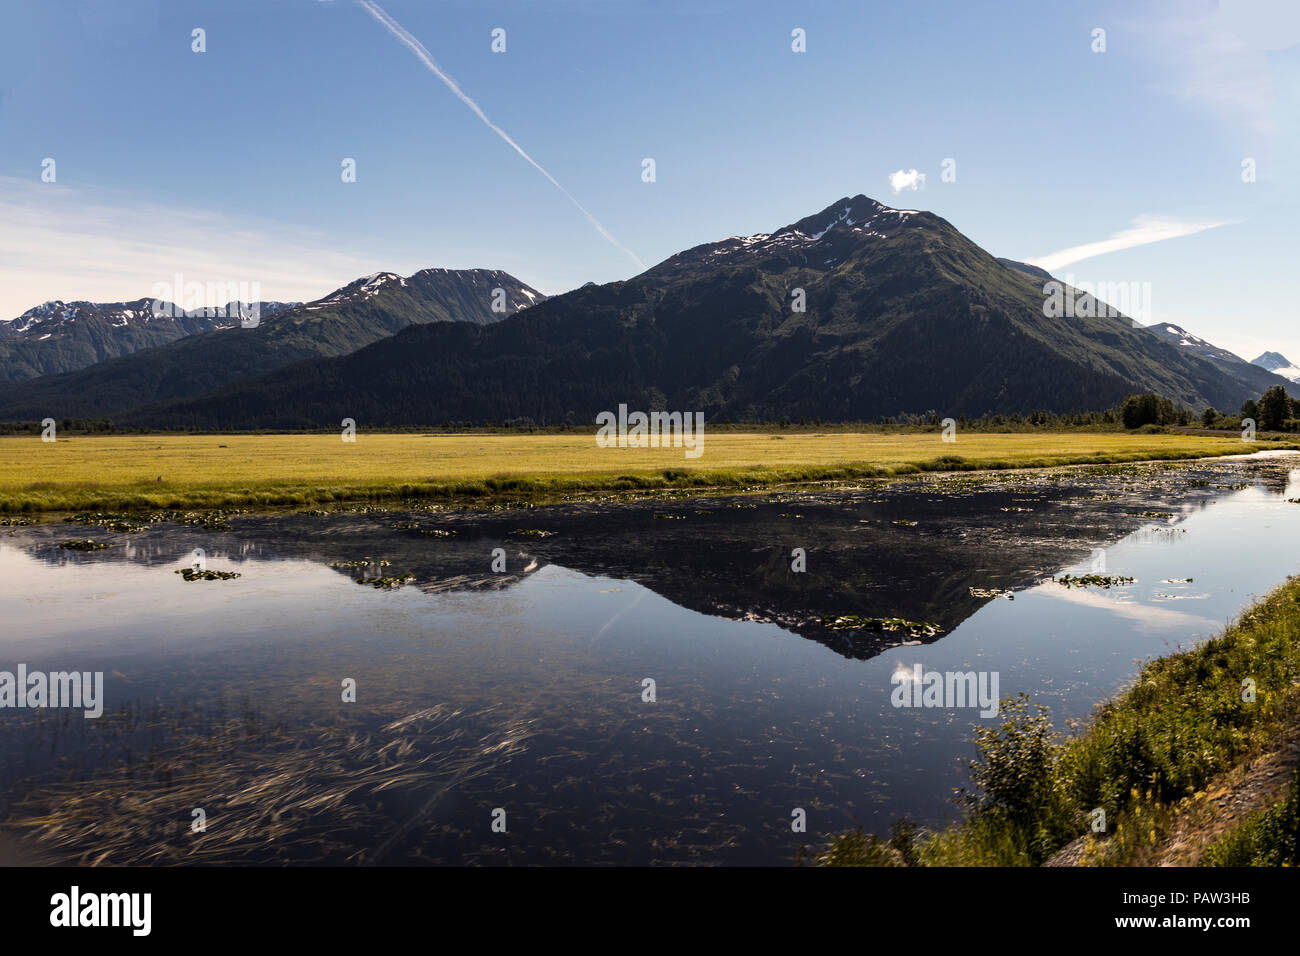 Potter Marsh, wildlife viewing area in the Anchorage area with a view of the Chugach Mountains, Alaska, USA in summertime. - Stock Image